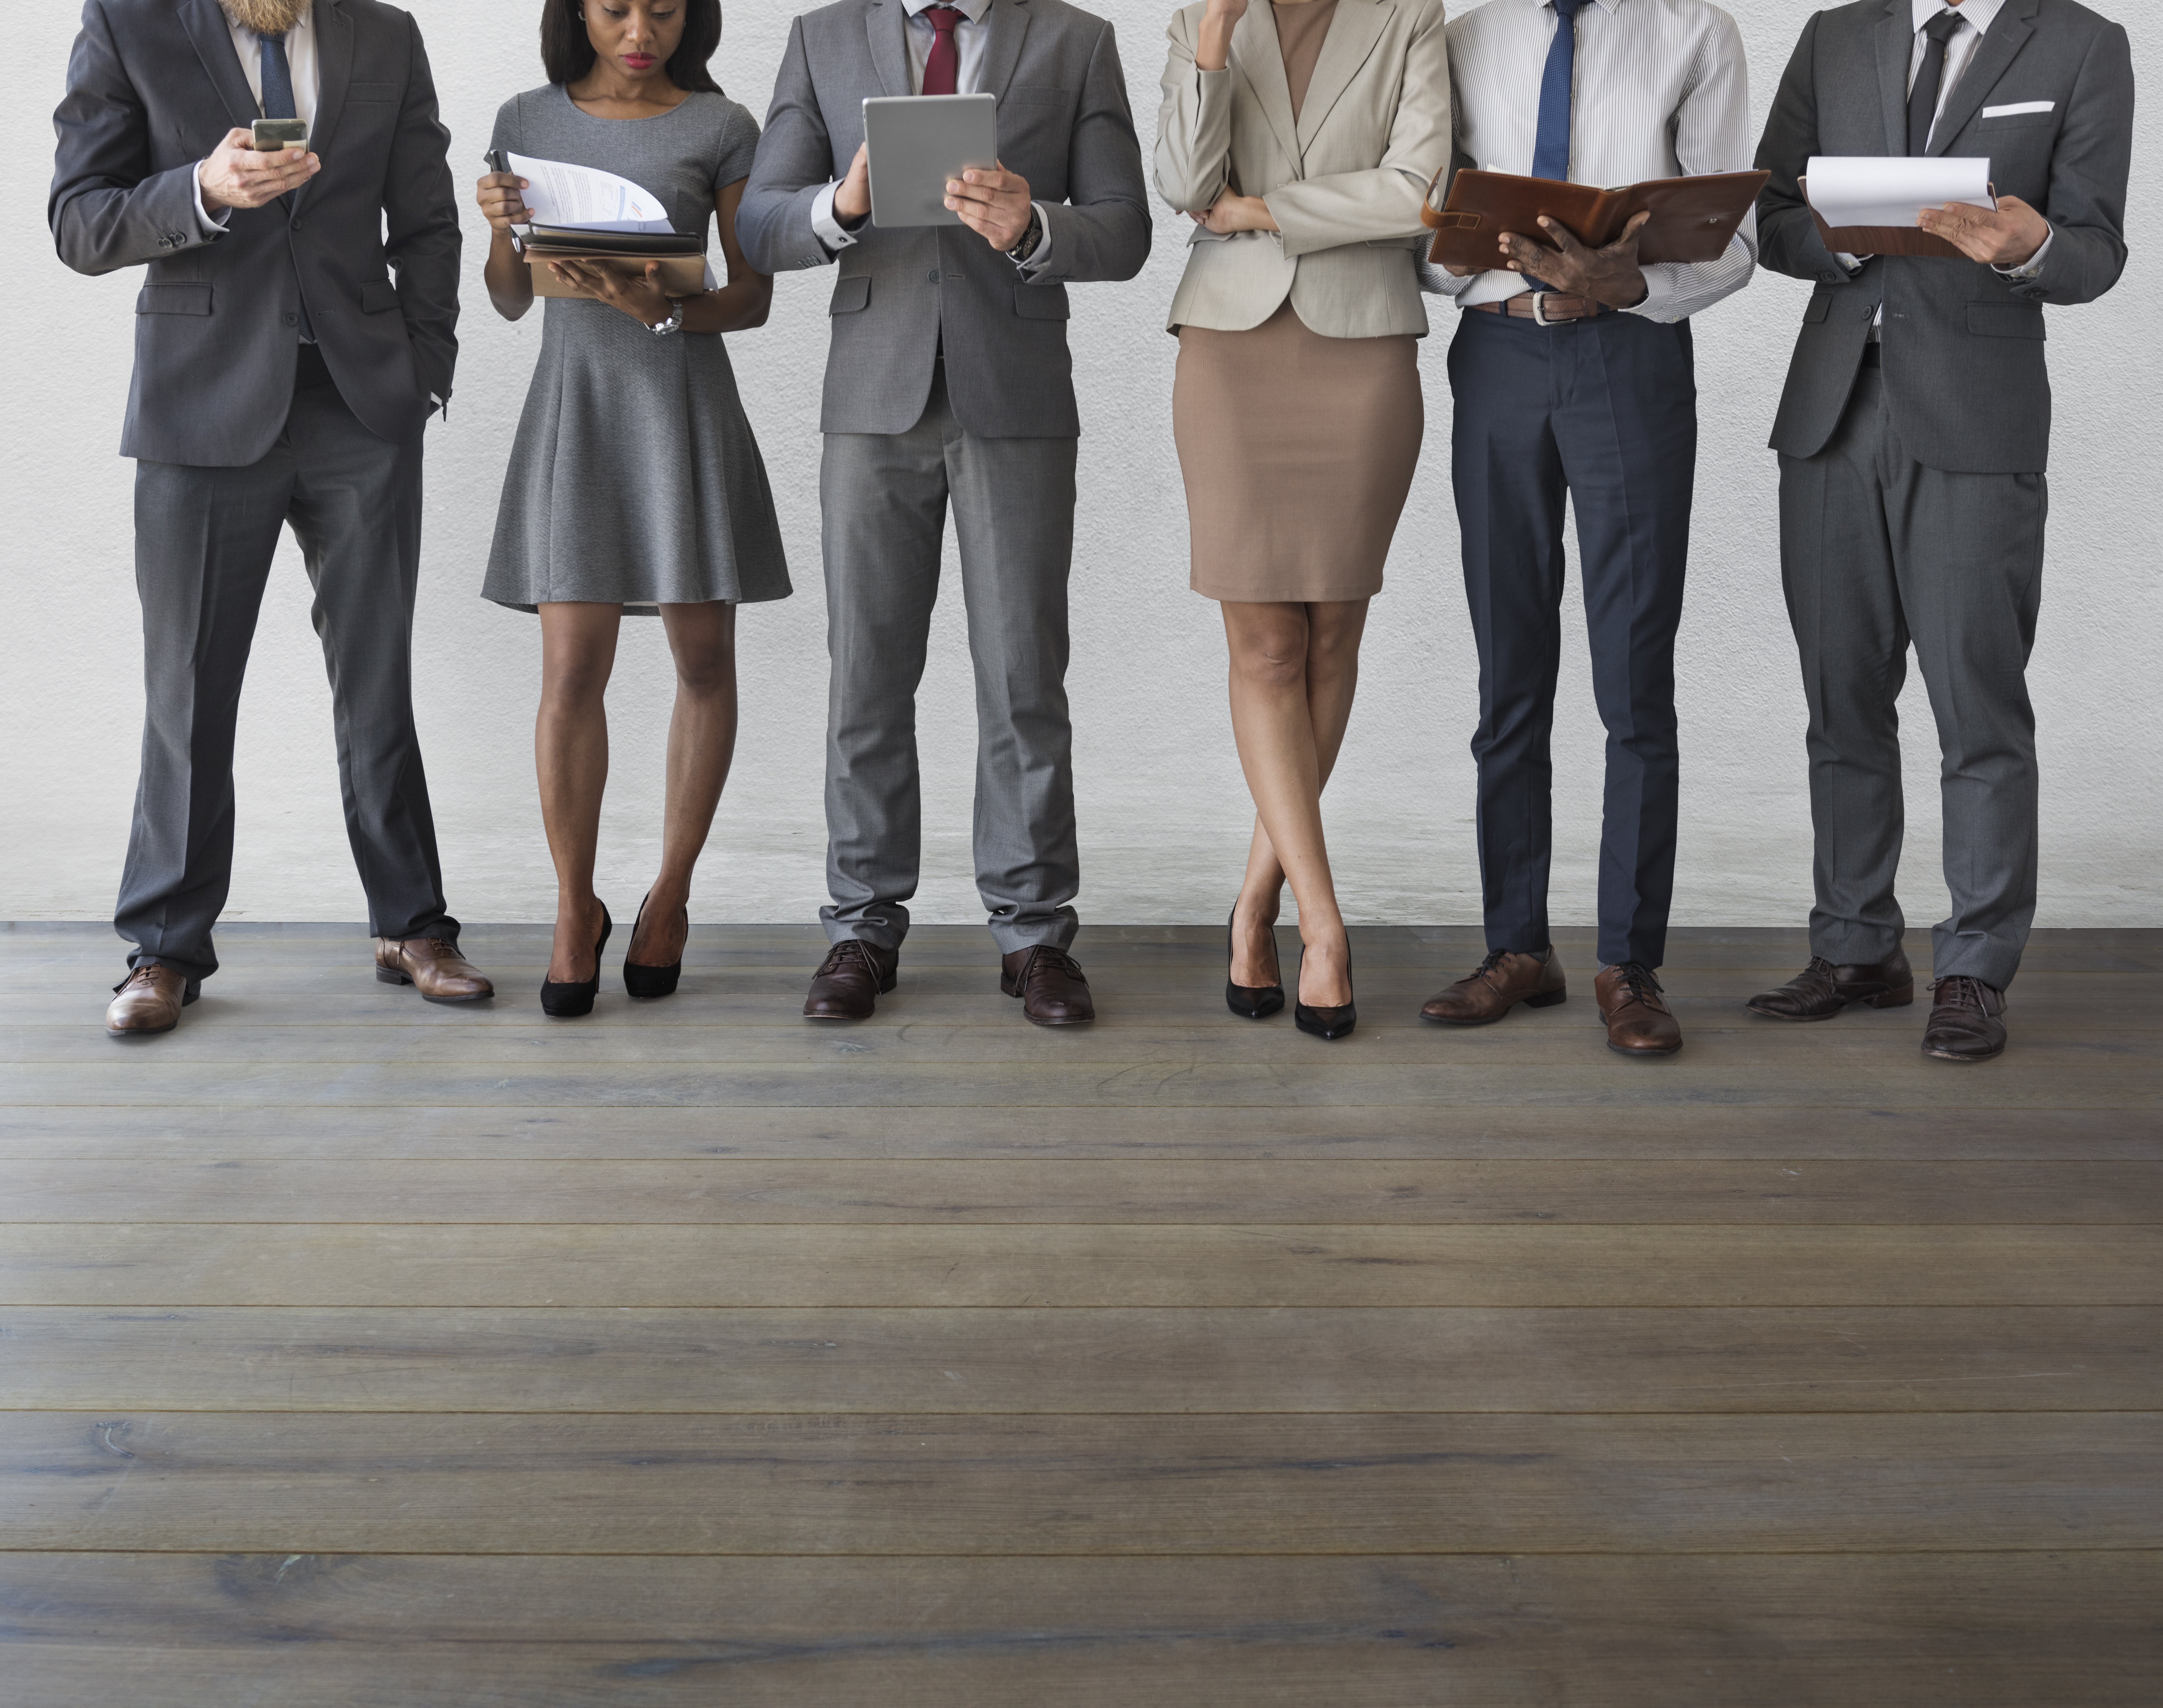 What To Expect When Working With A Staffing Firm